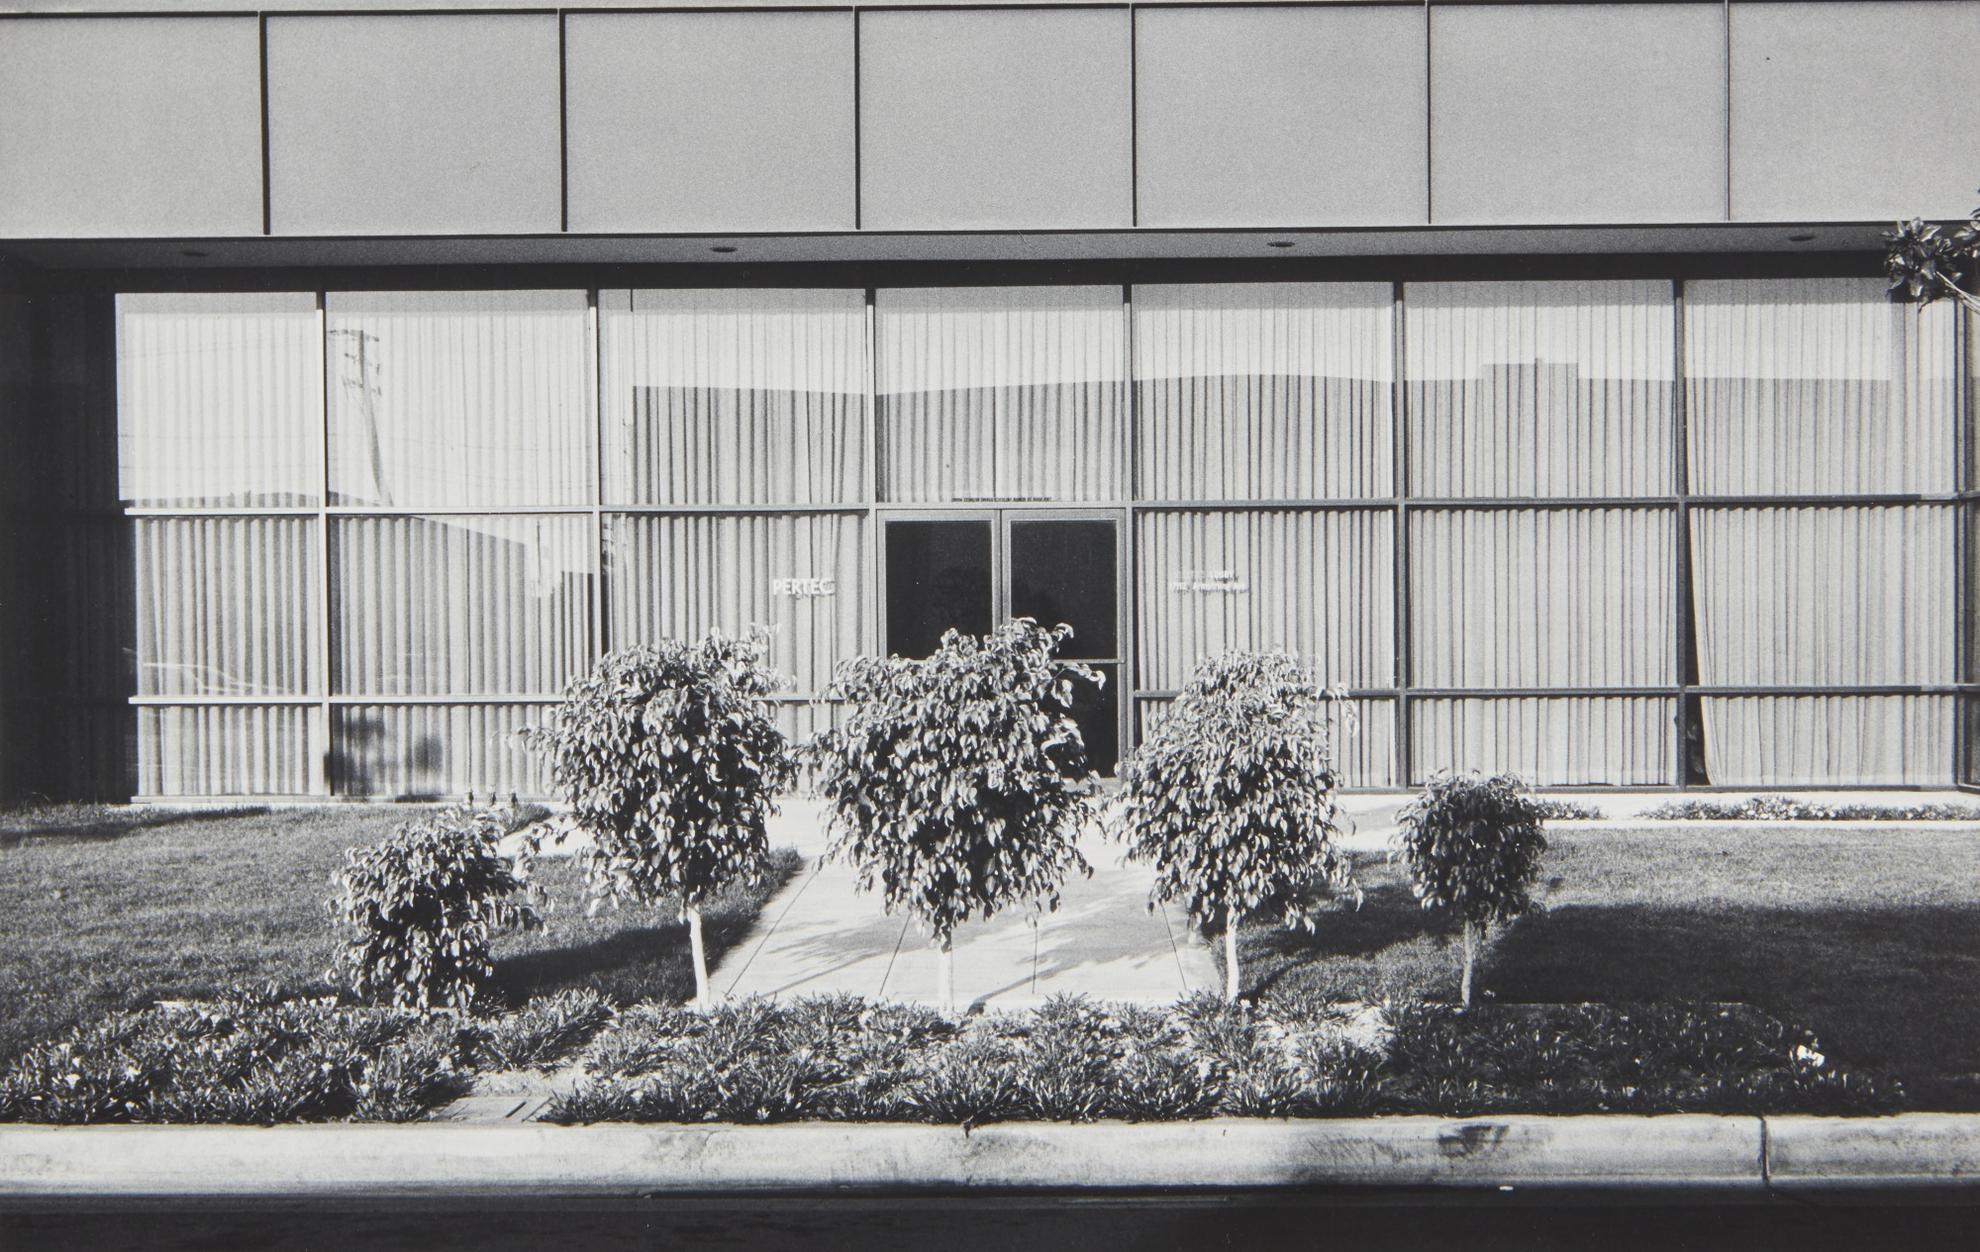 Lewis Baltz-New Industrial Parks #37: East Wall, Business Systems Division, Pertec, 1881 Langley, Santa Ana-1974